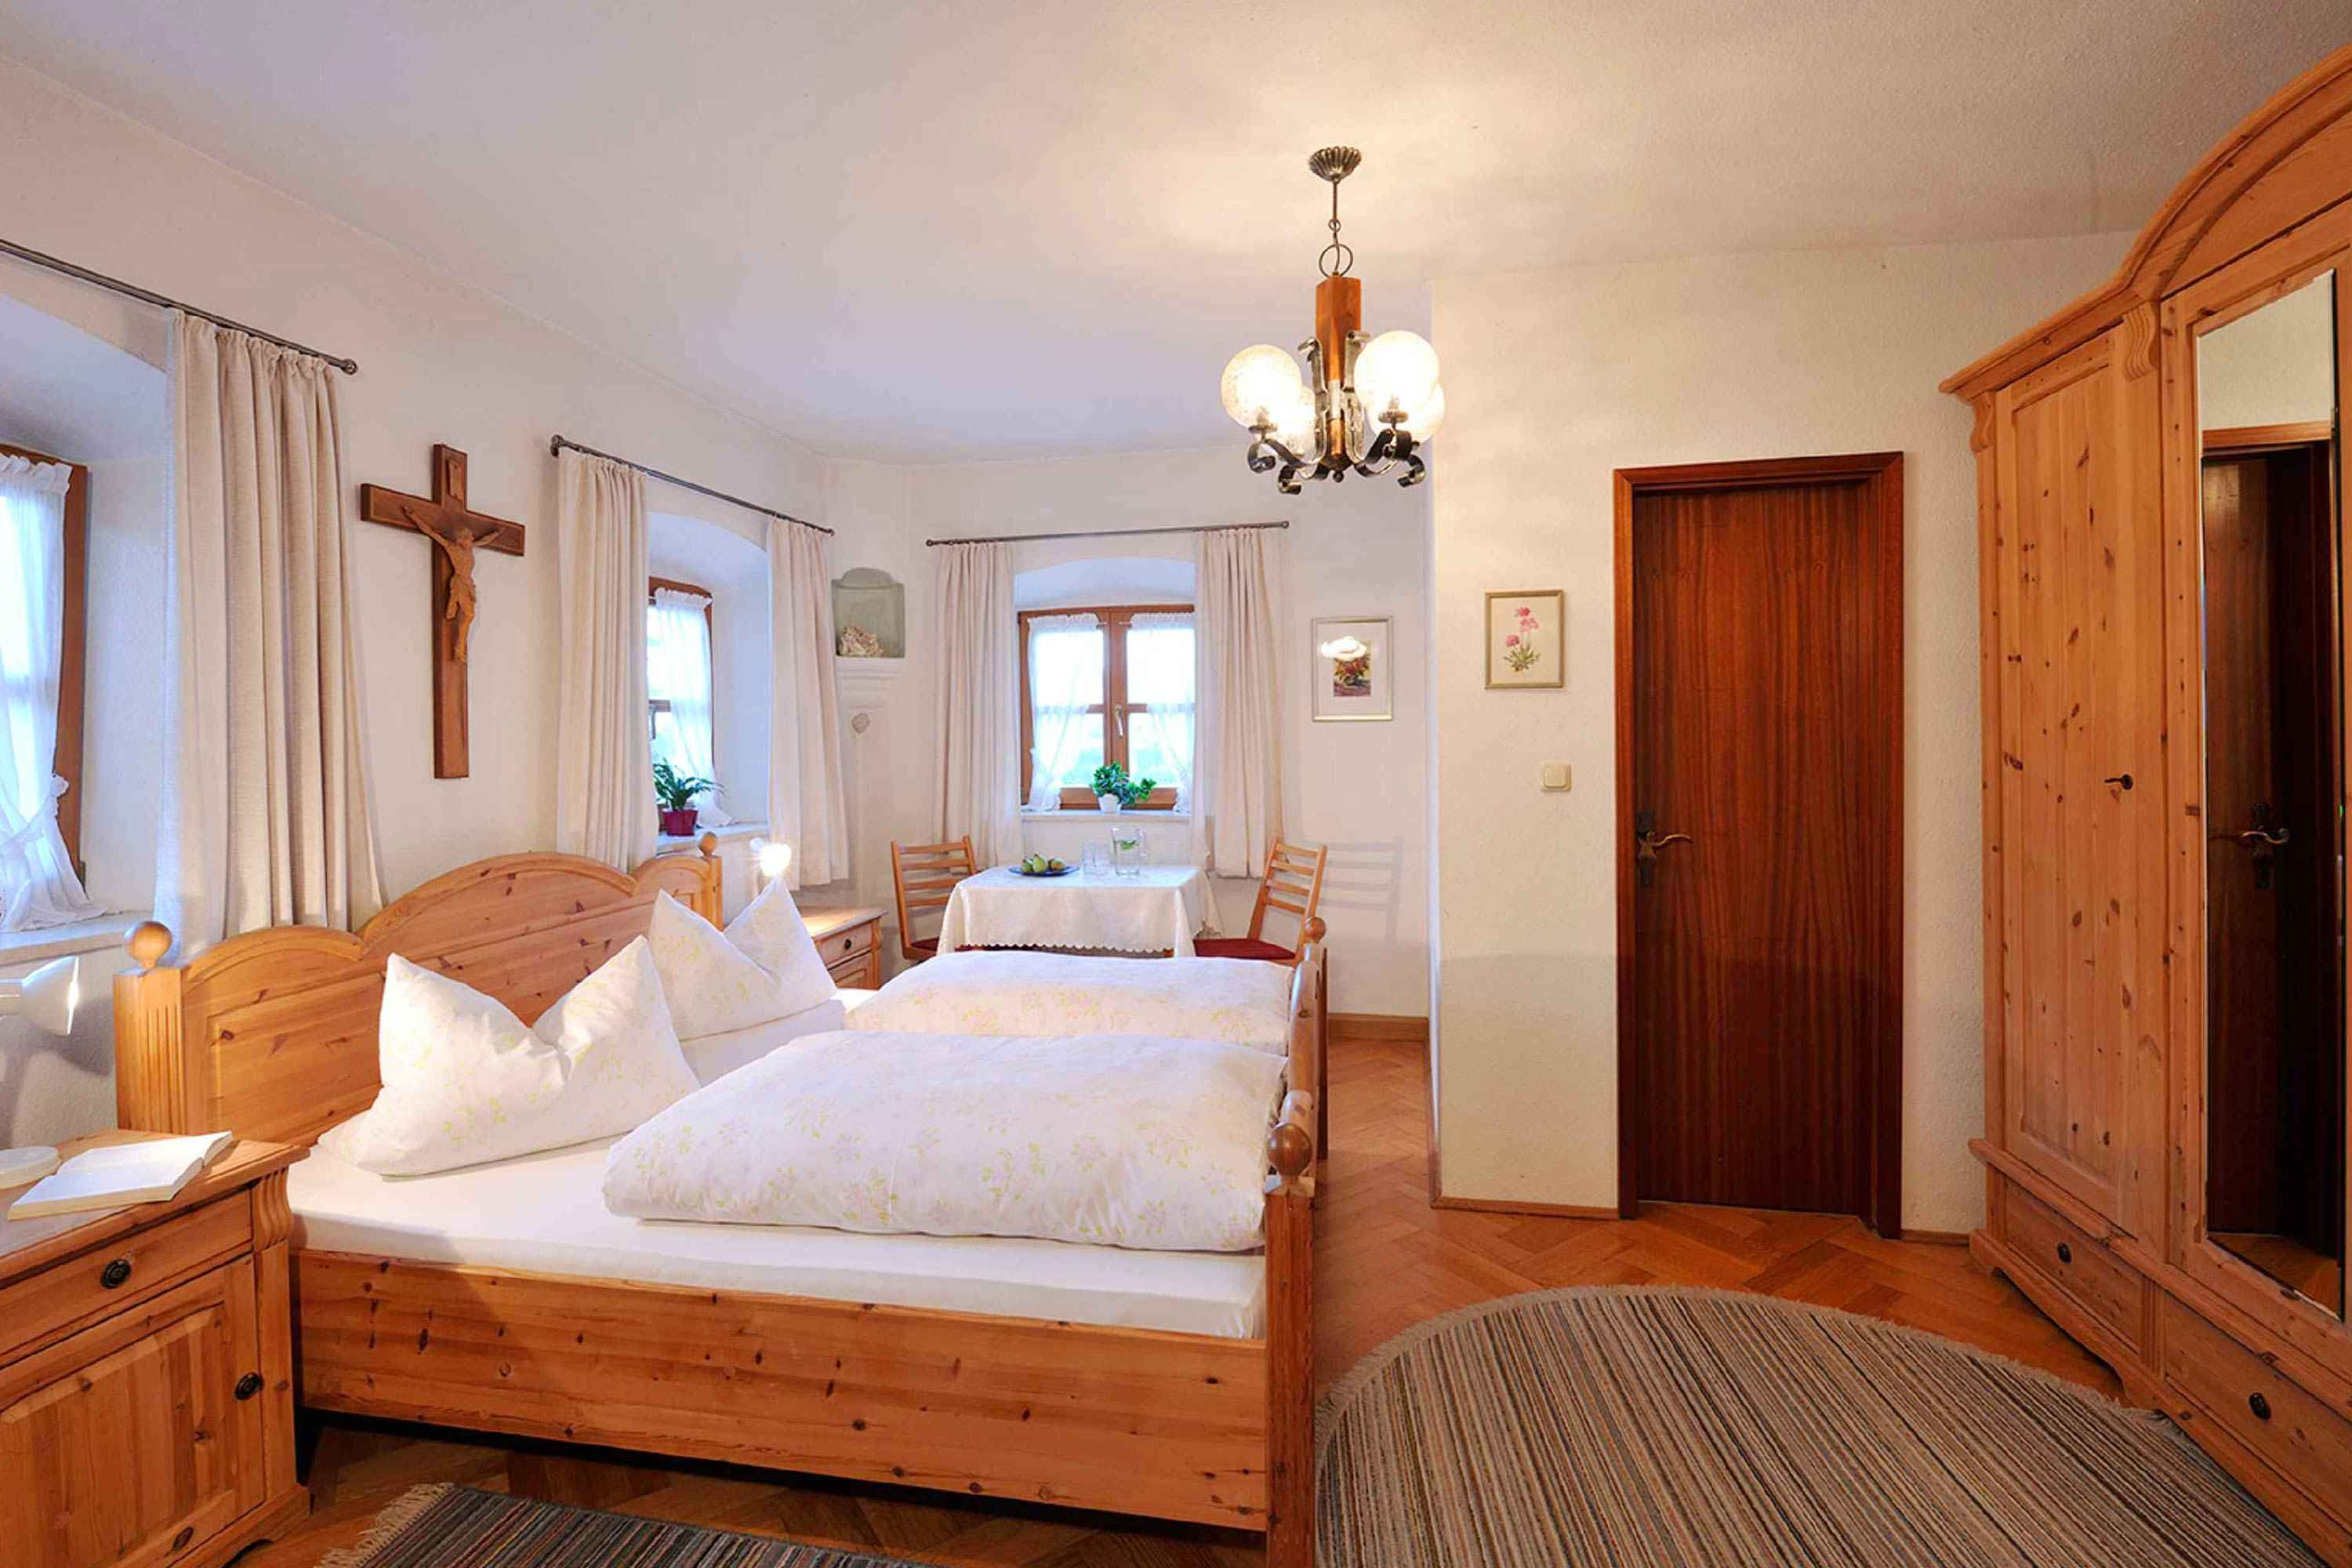 3-Sterne Doppelzimmer Lamplhof Oberbayern Chiemsee